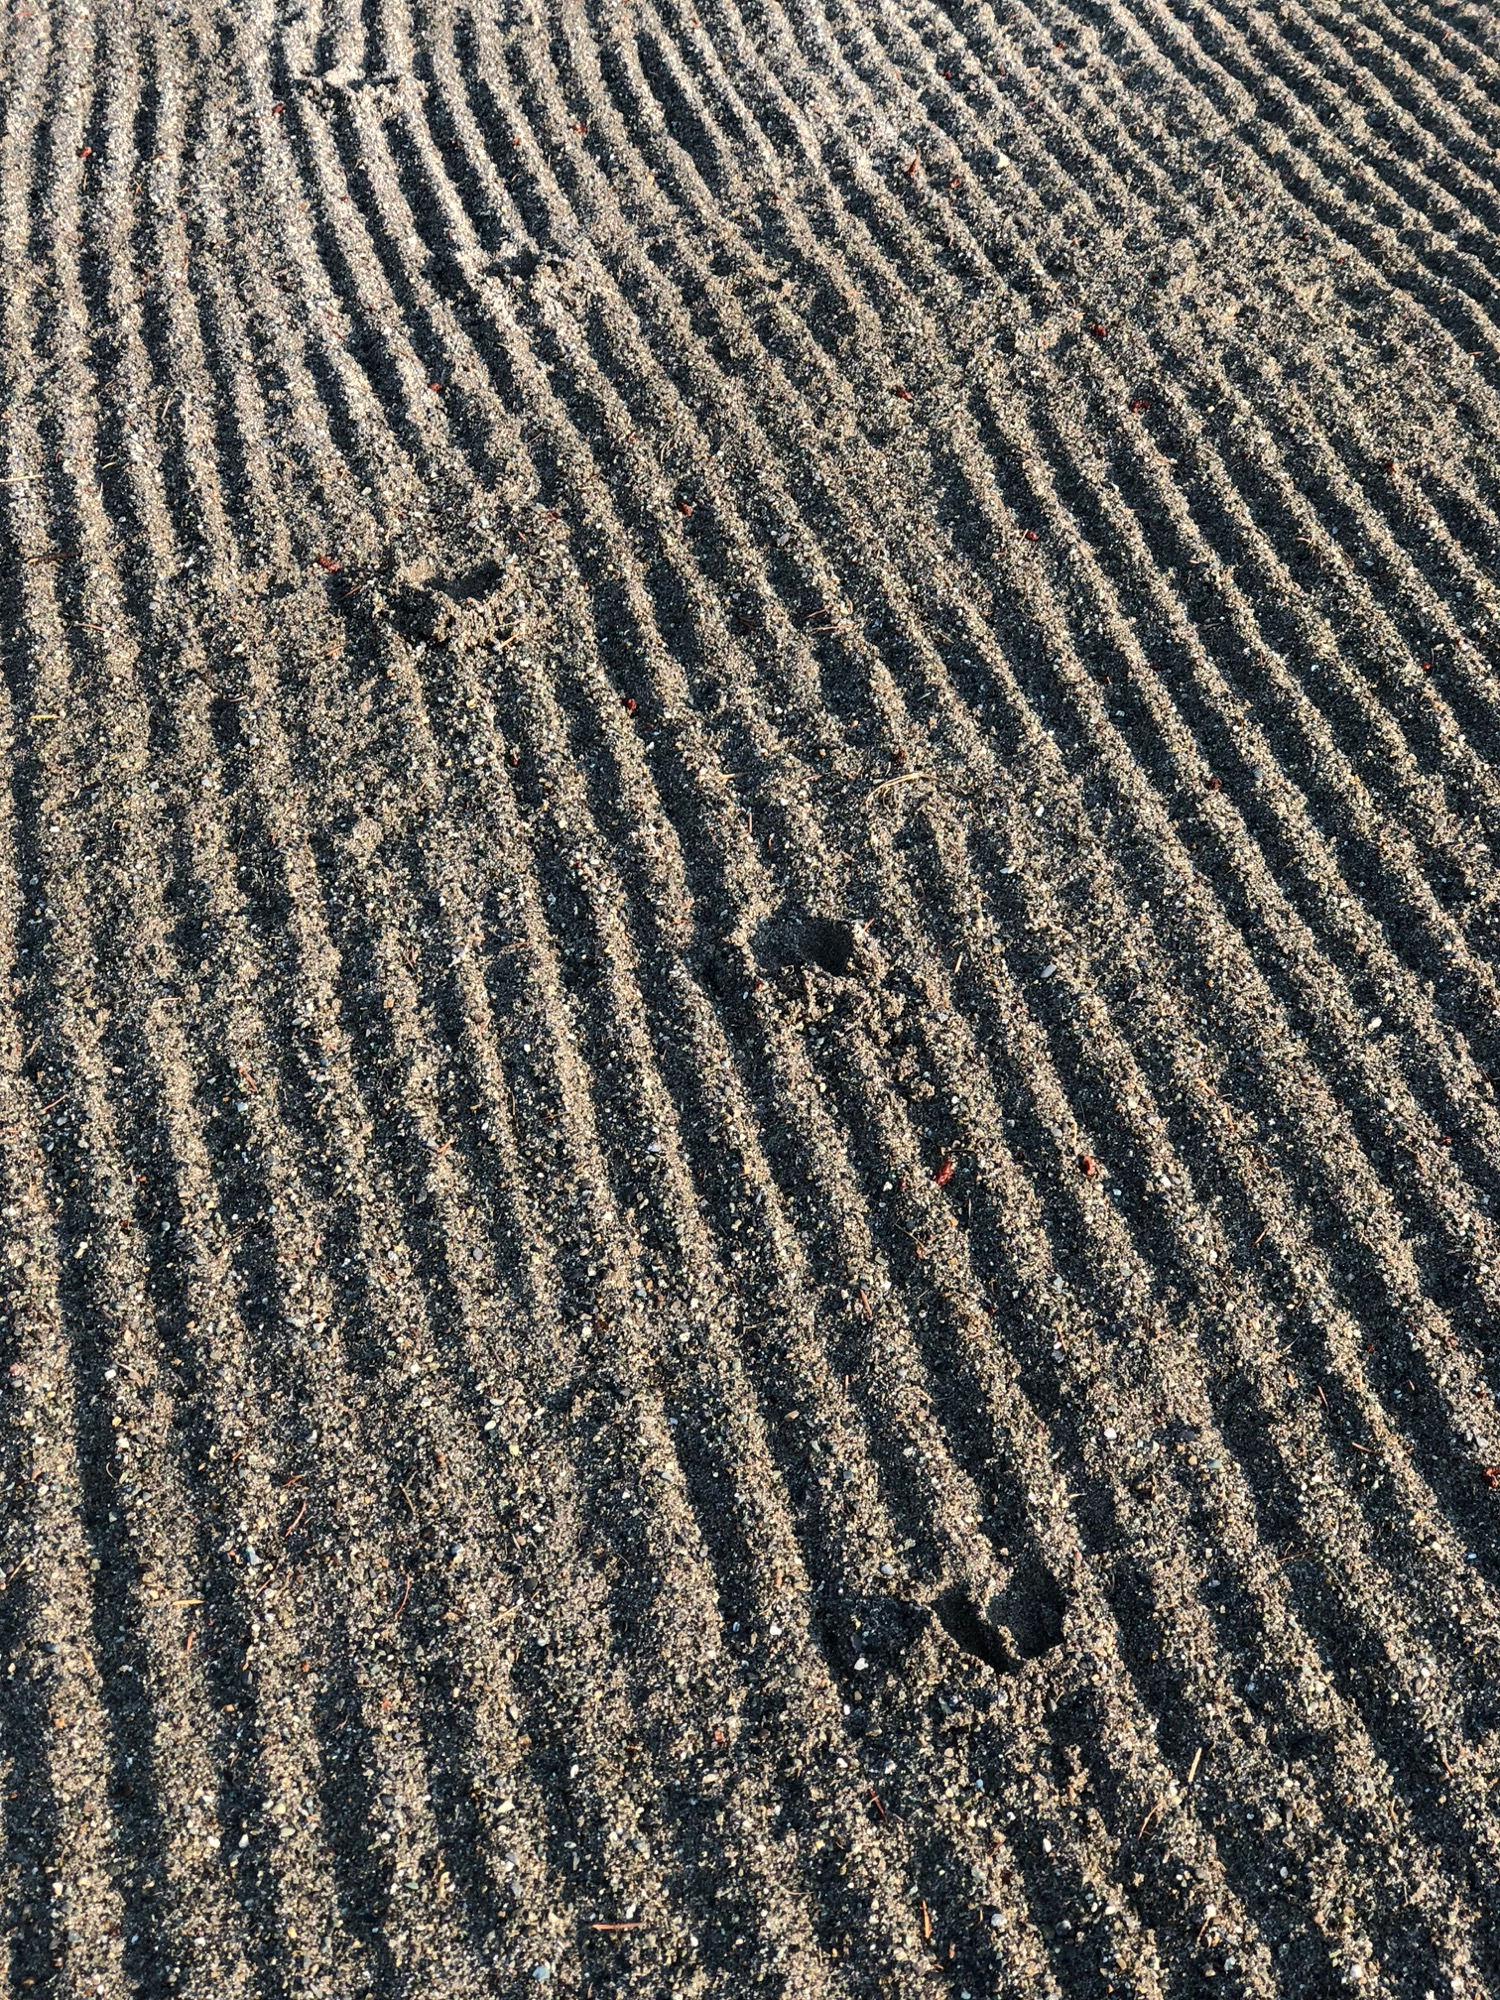 Deer tracks in the sand trap. Do they not train these deer to use the rake?